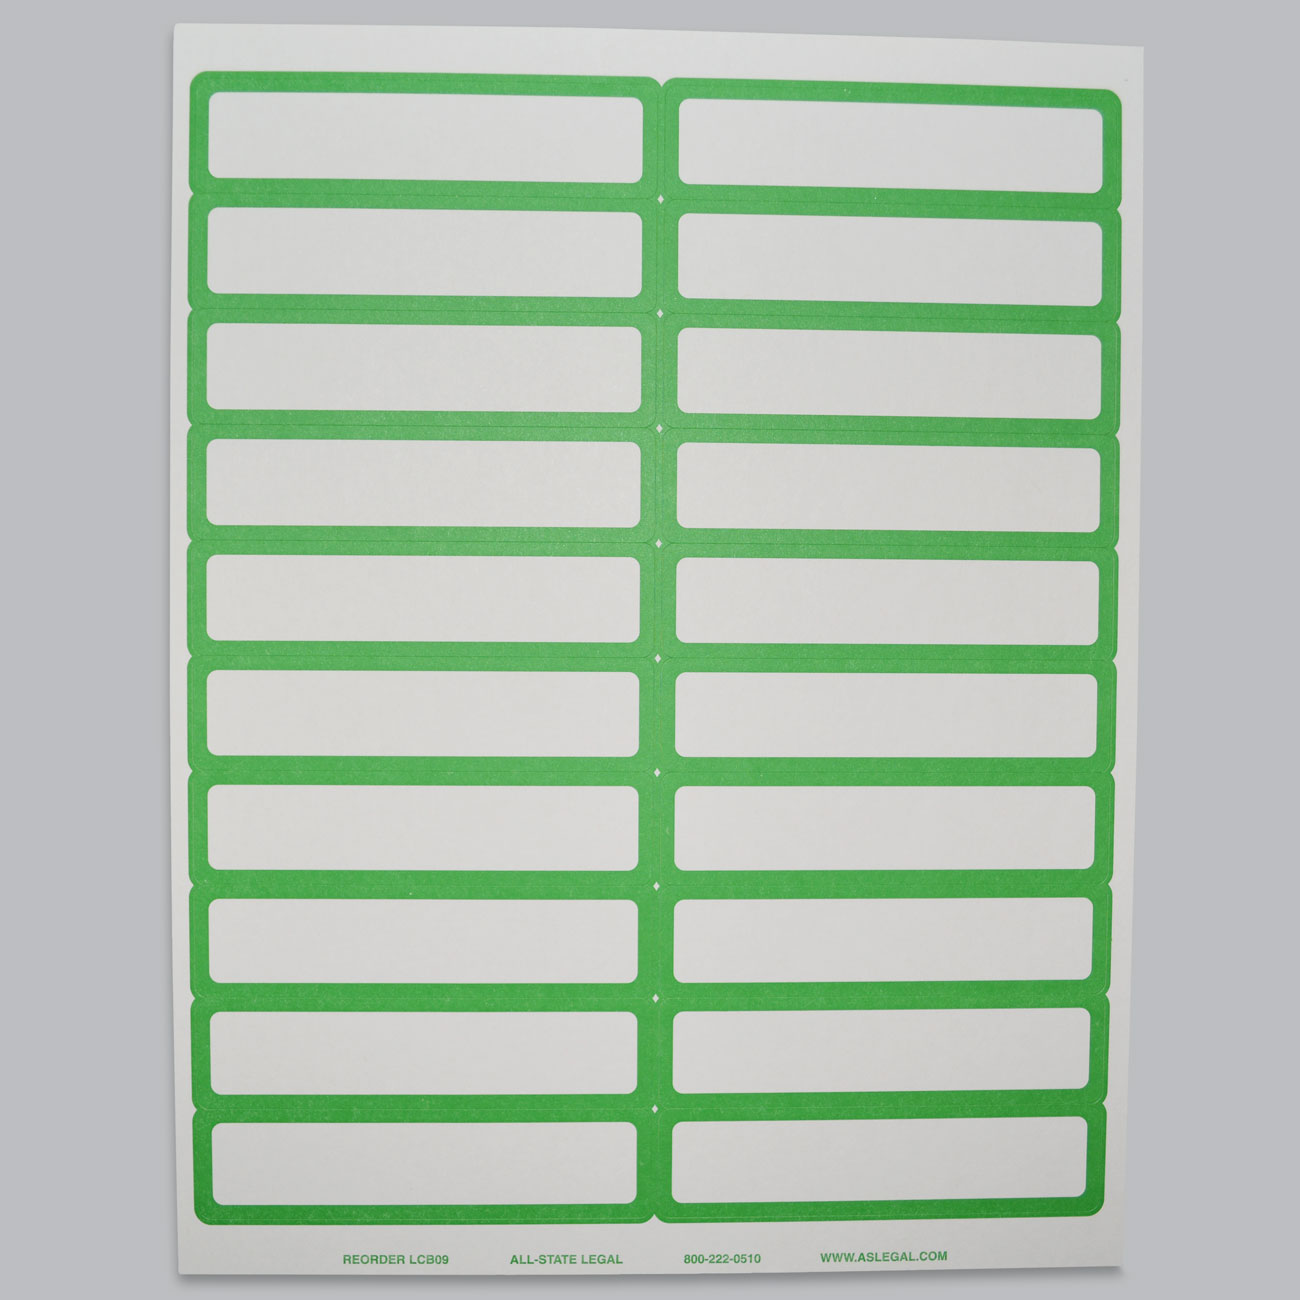 "File Folder Labels Label, 4"" x 15/16"", Green Self-Adhesive File Folder Laser Label, 20 Labels/Sheet, 500 Labels/PK (Matches Color-Bands)"